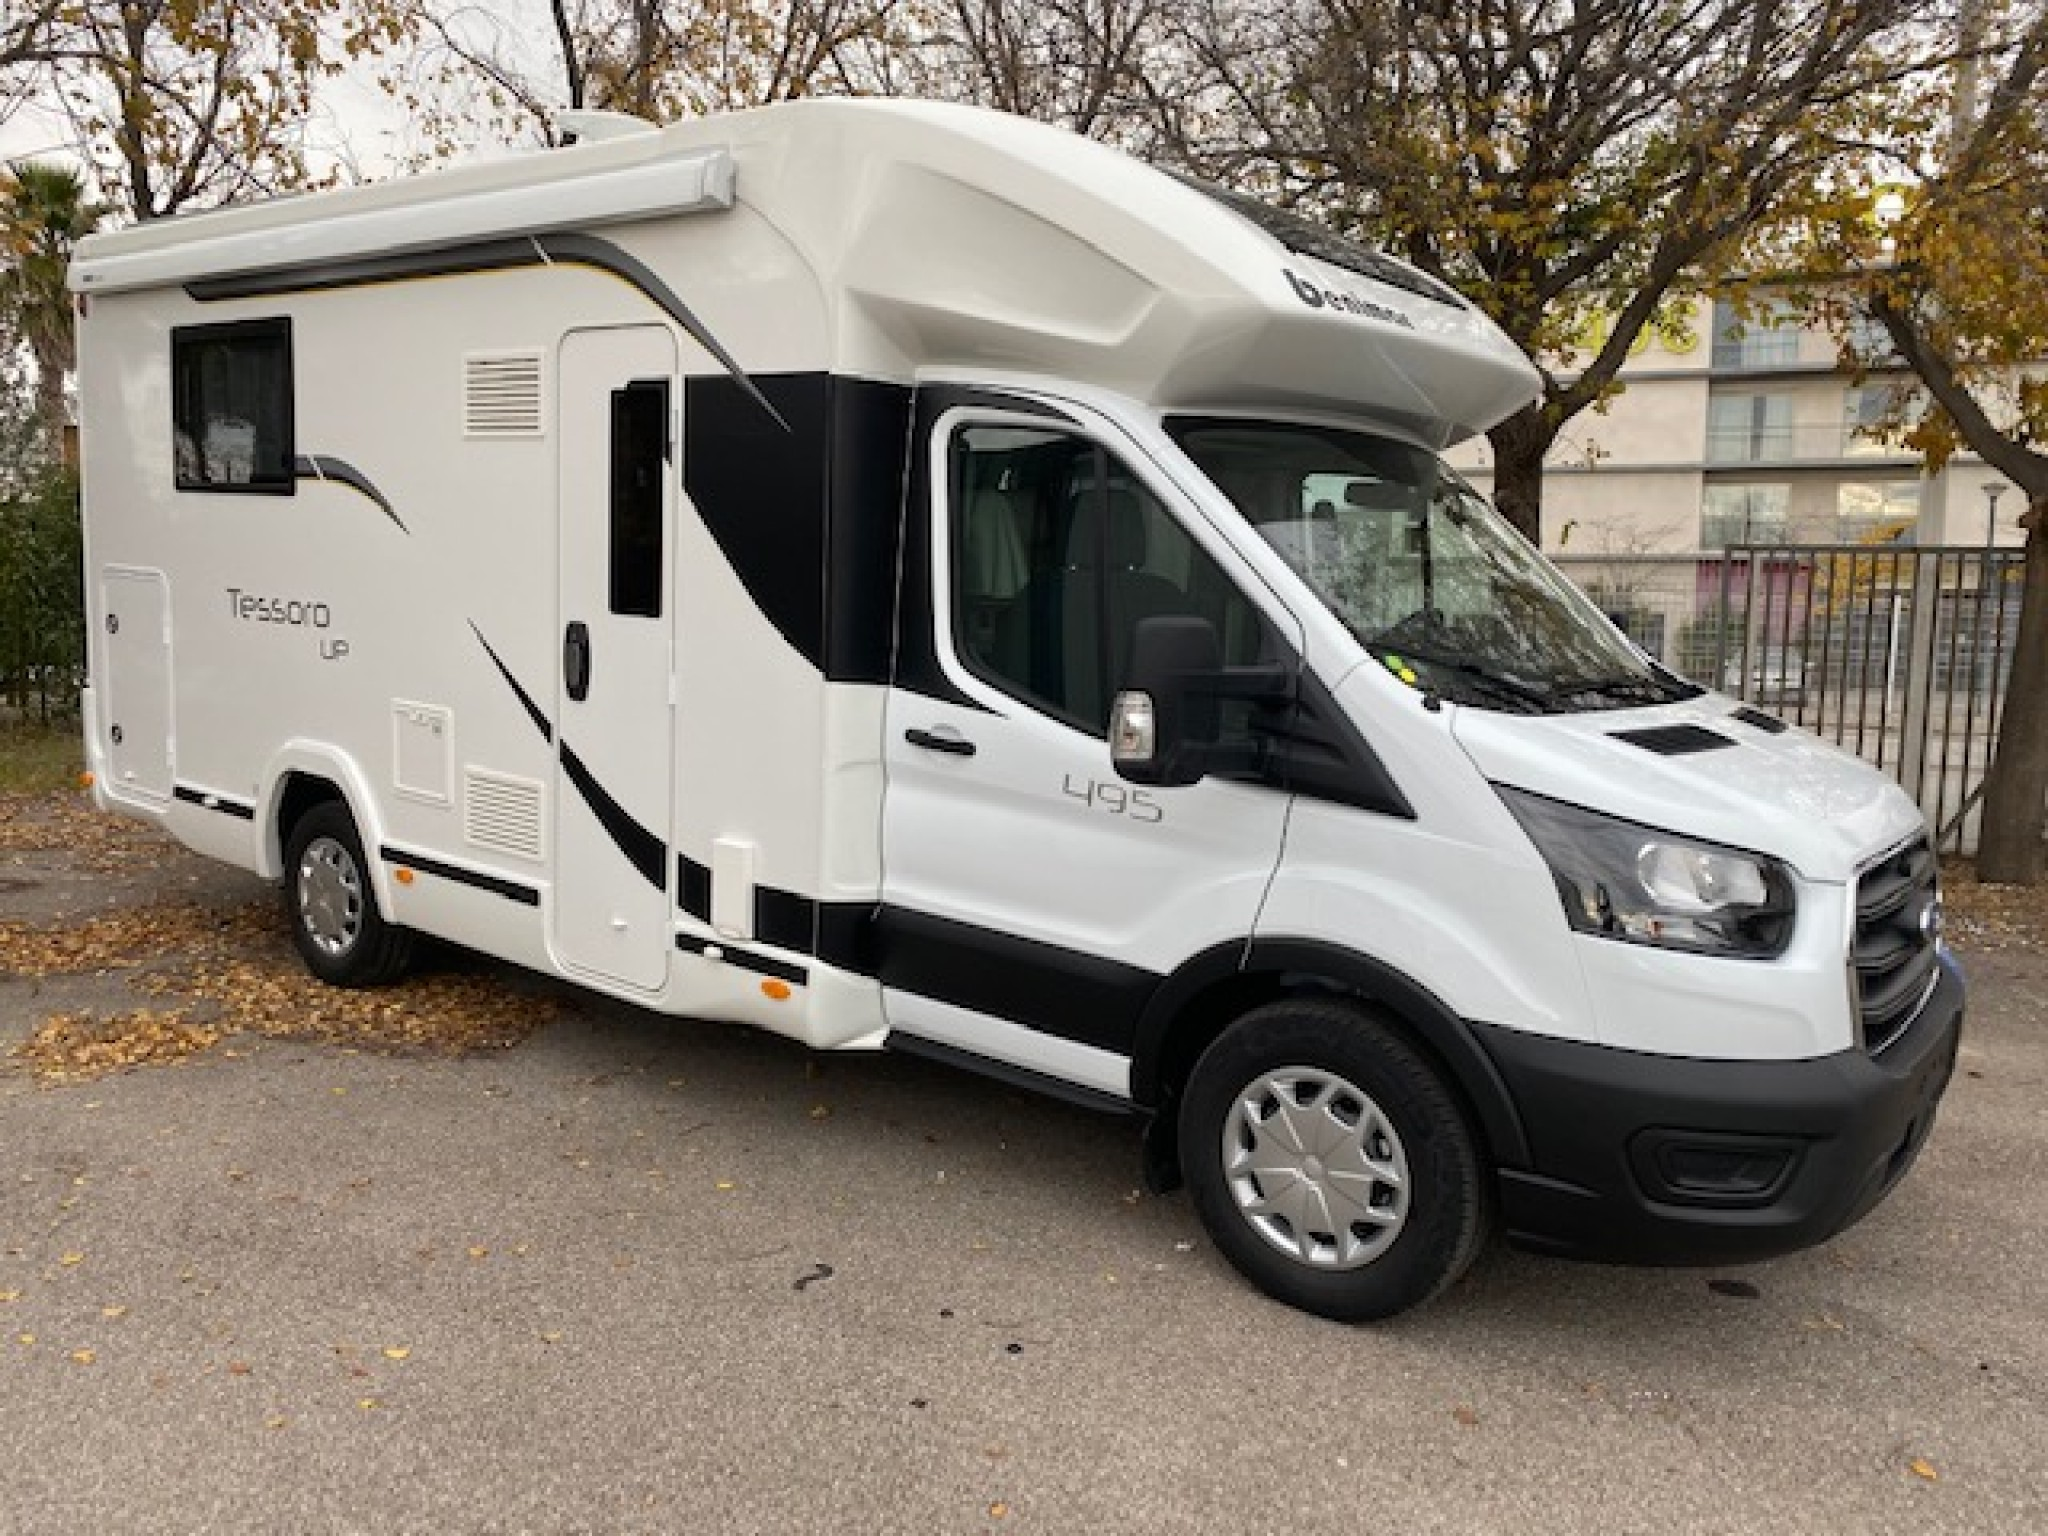 Camping-car BENIMAR TESSORO 495 UP